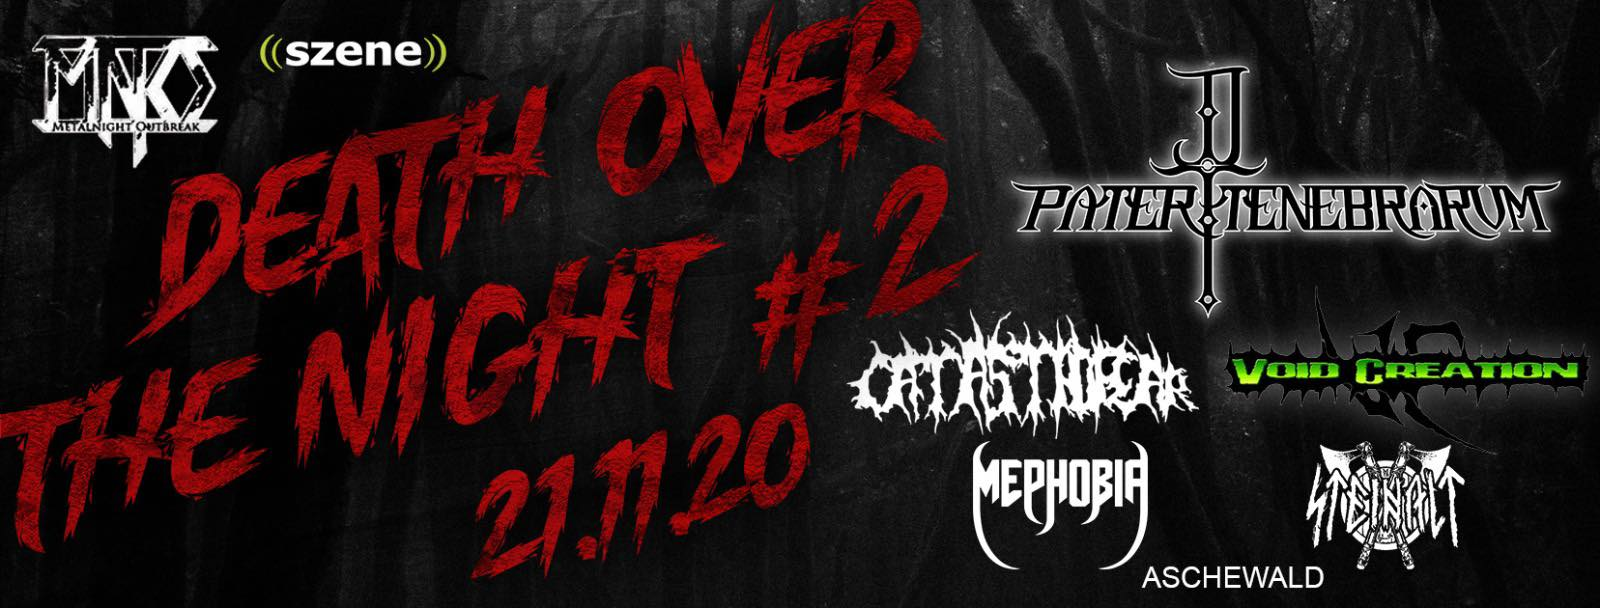 Death Over The Night #2 am 21. November 2020 @ Simm City.